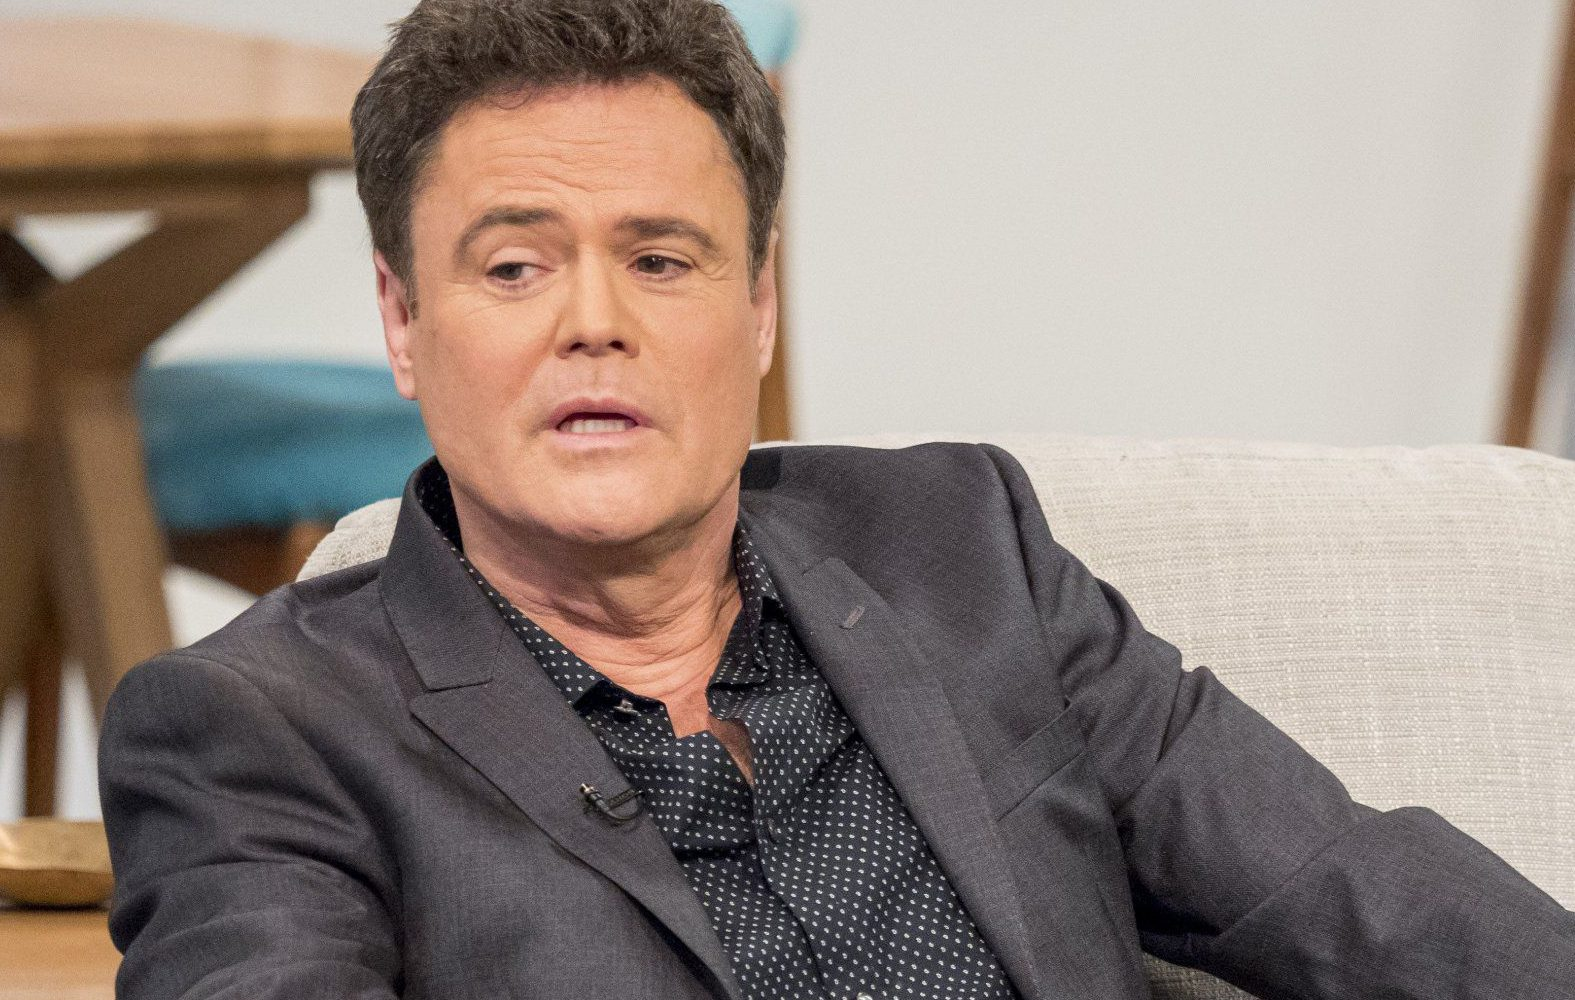 Donny Osmond tried whipping out his best Scottish accent for Lorraine (Picture: ITV/REX/Shutterstock)